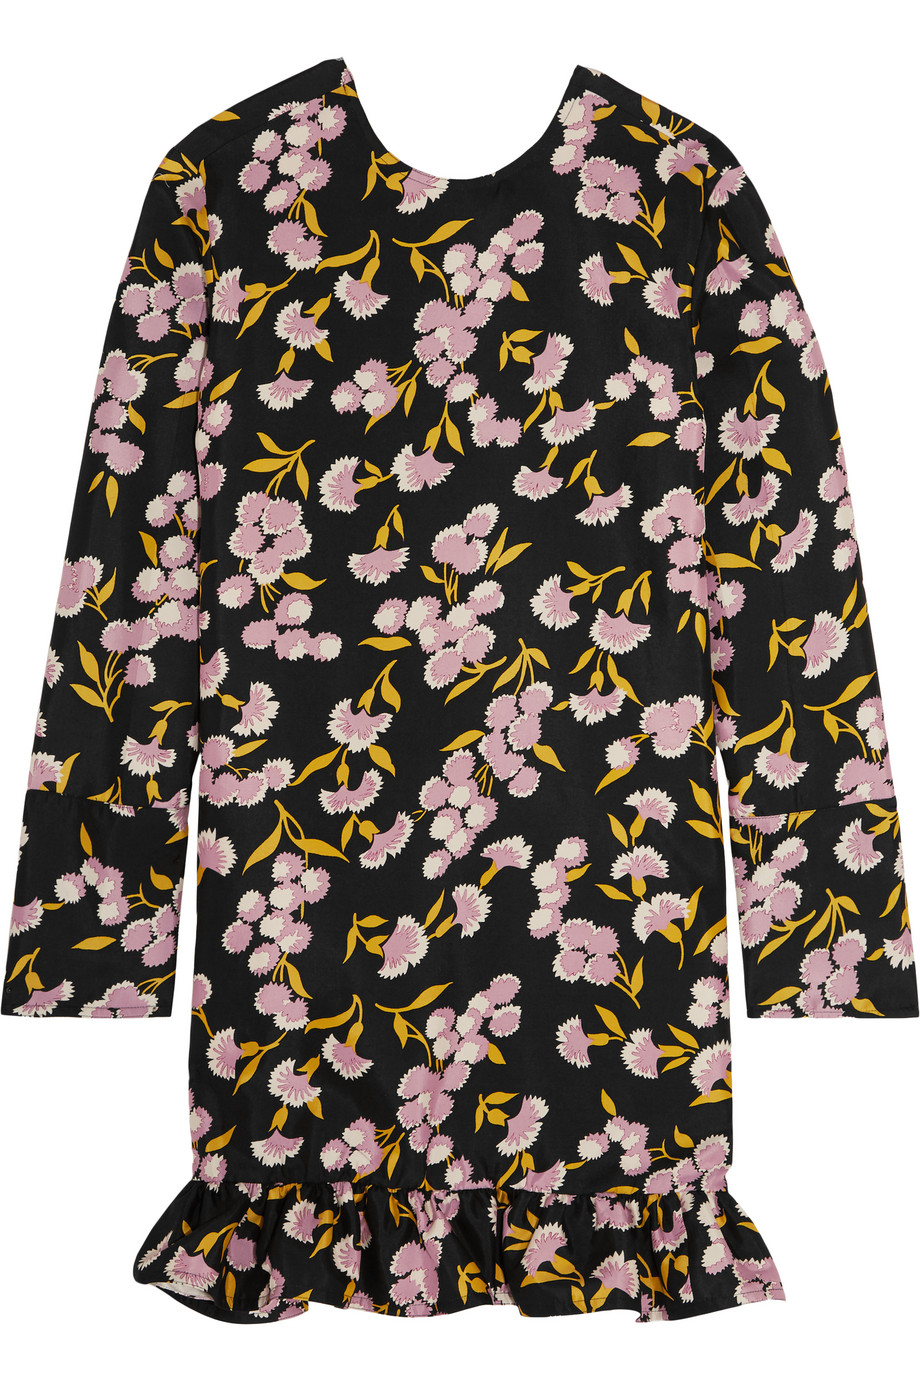 Marni Ruffled Floral-Print Cotton and Silk-Blend Mini Dress, Black/Pink, Women's - Floral, Size: 40